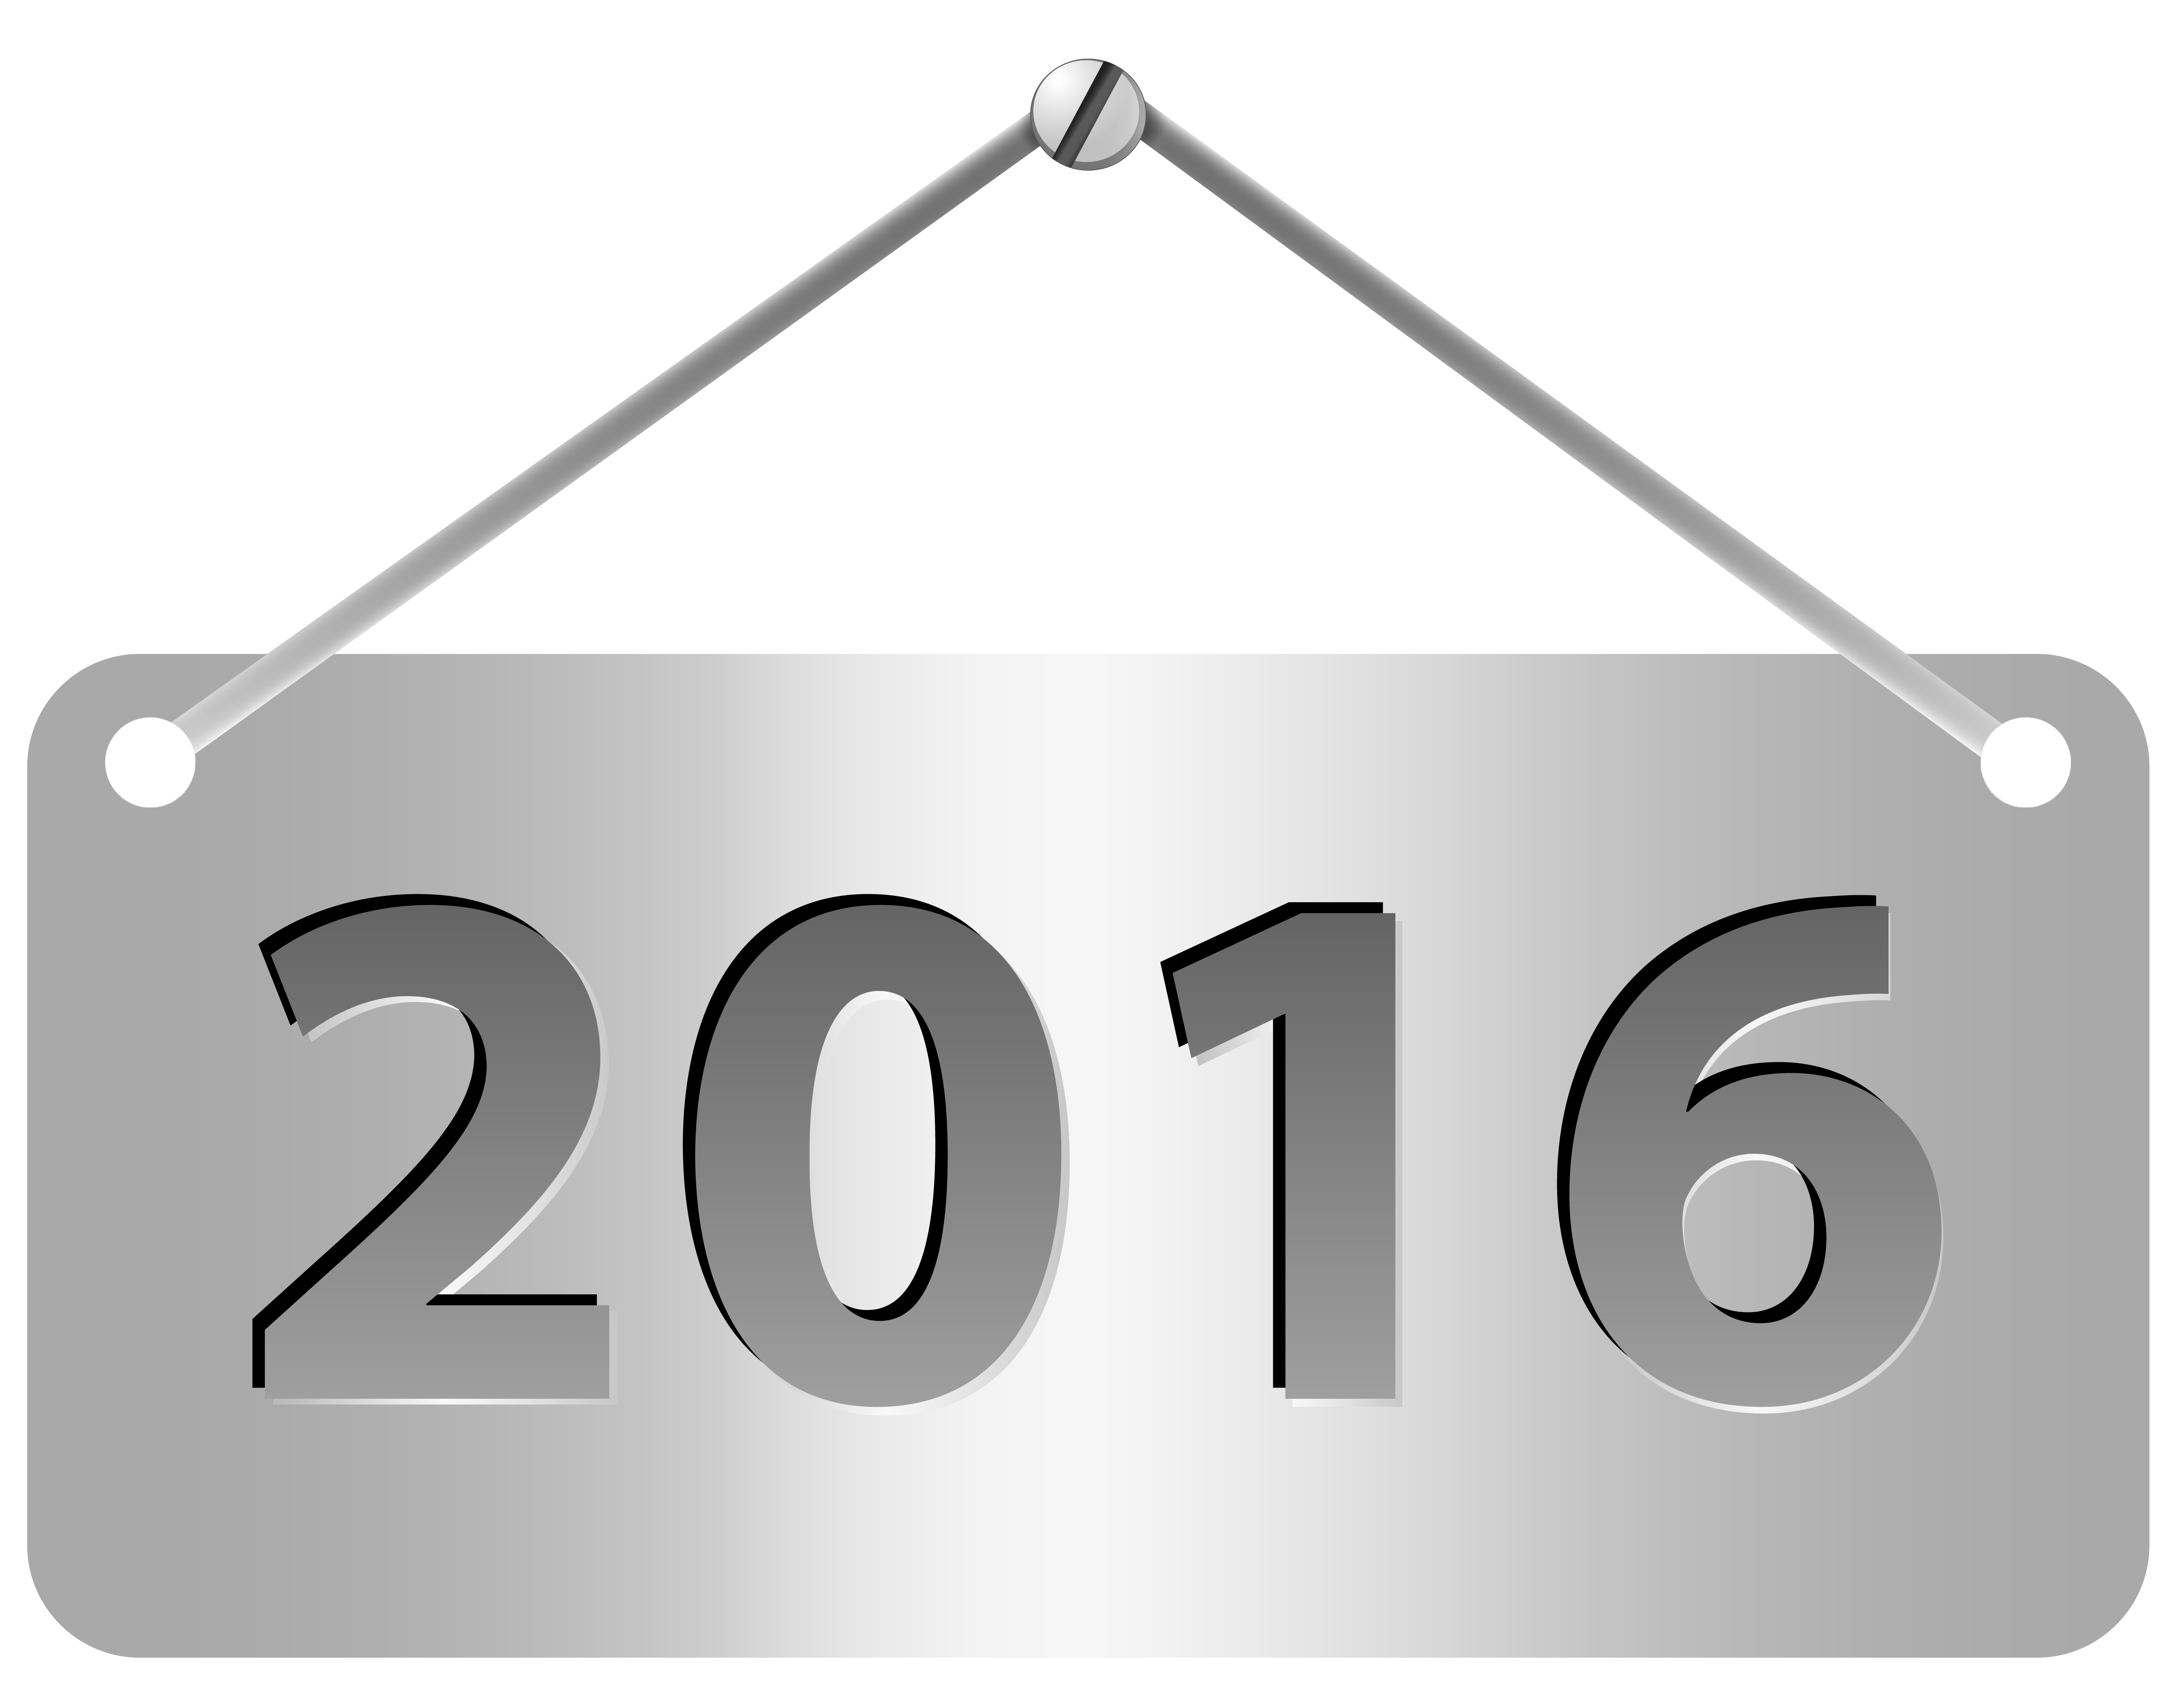 Silver Label 2016 PNG Clipart Image.